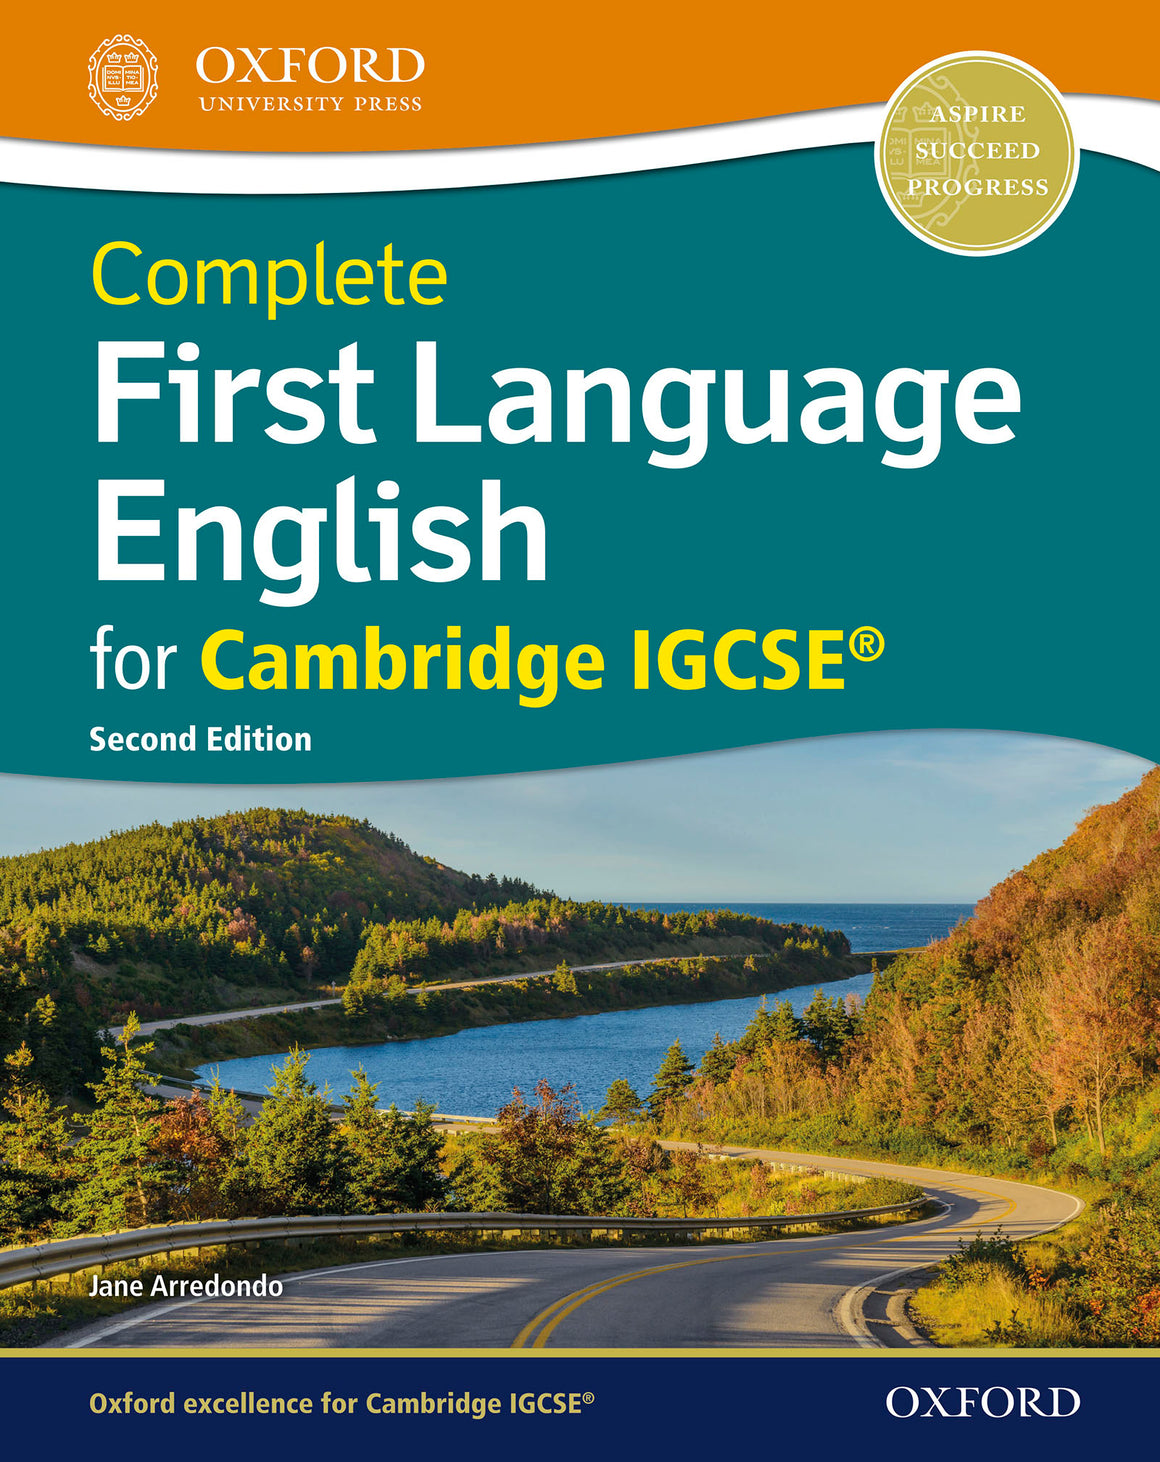 Complete First Language English for Cambridge IGCSE®